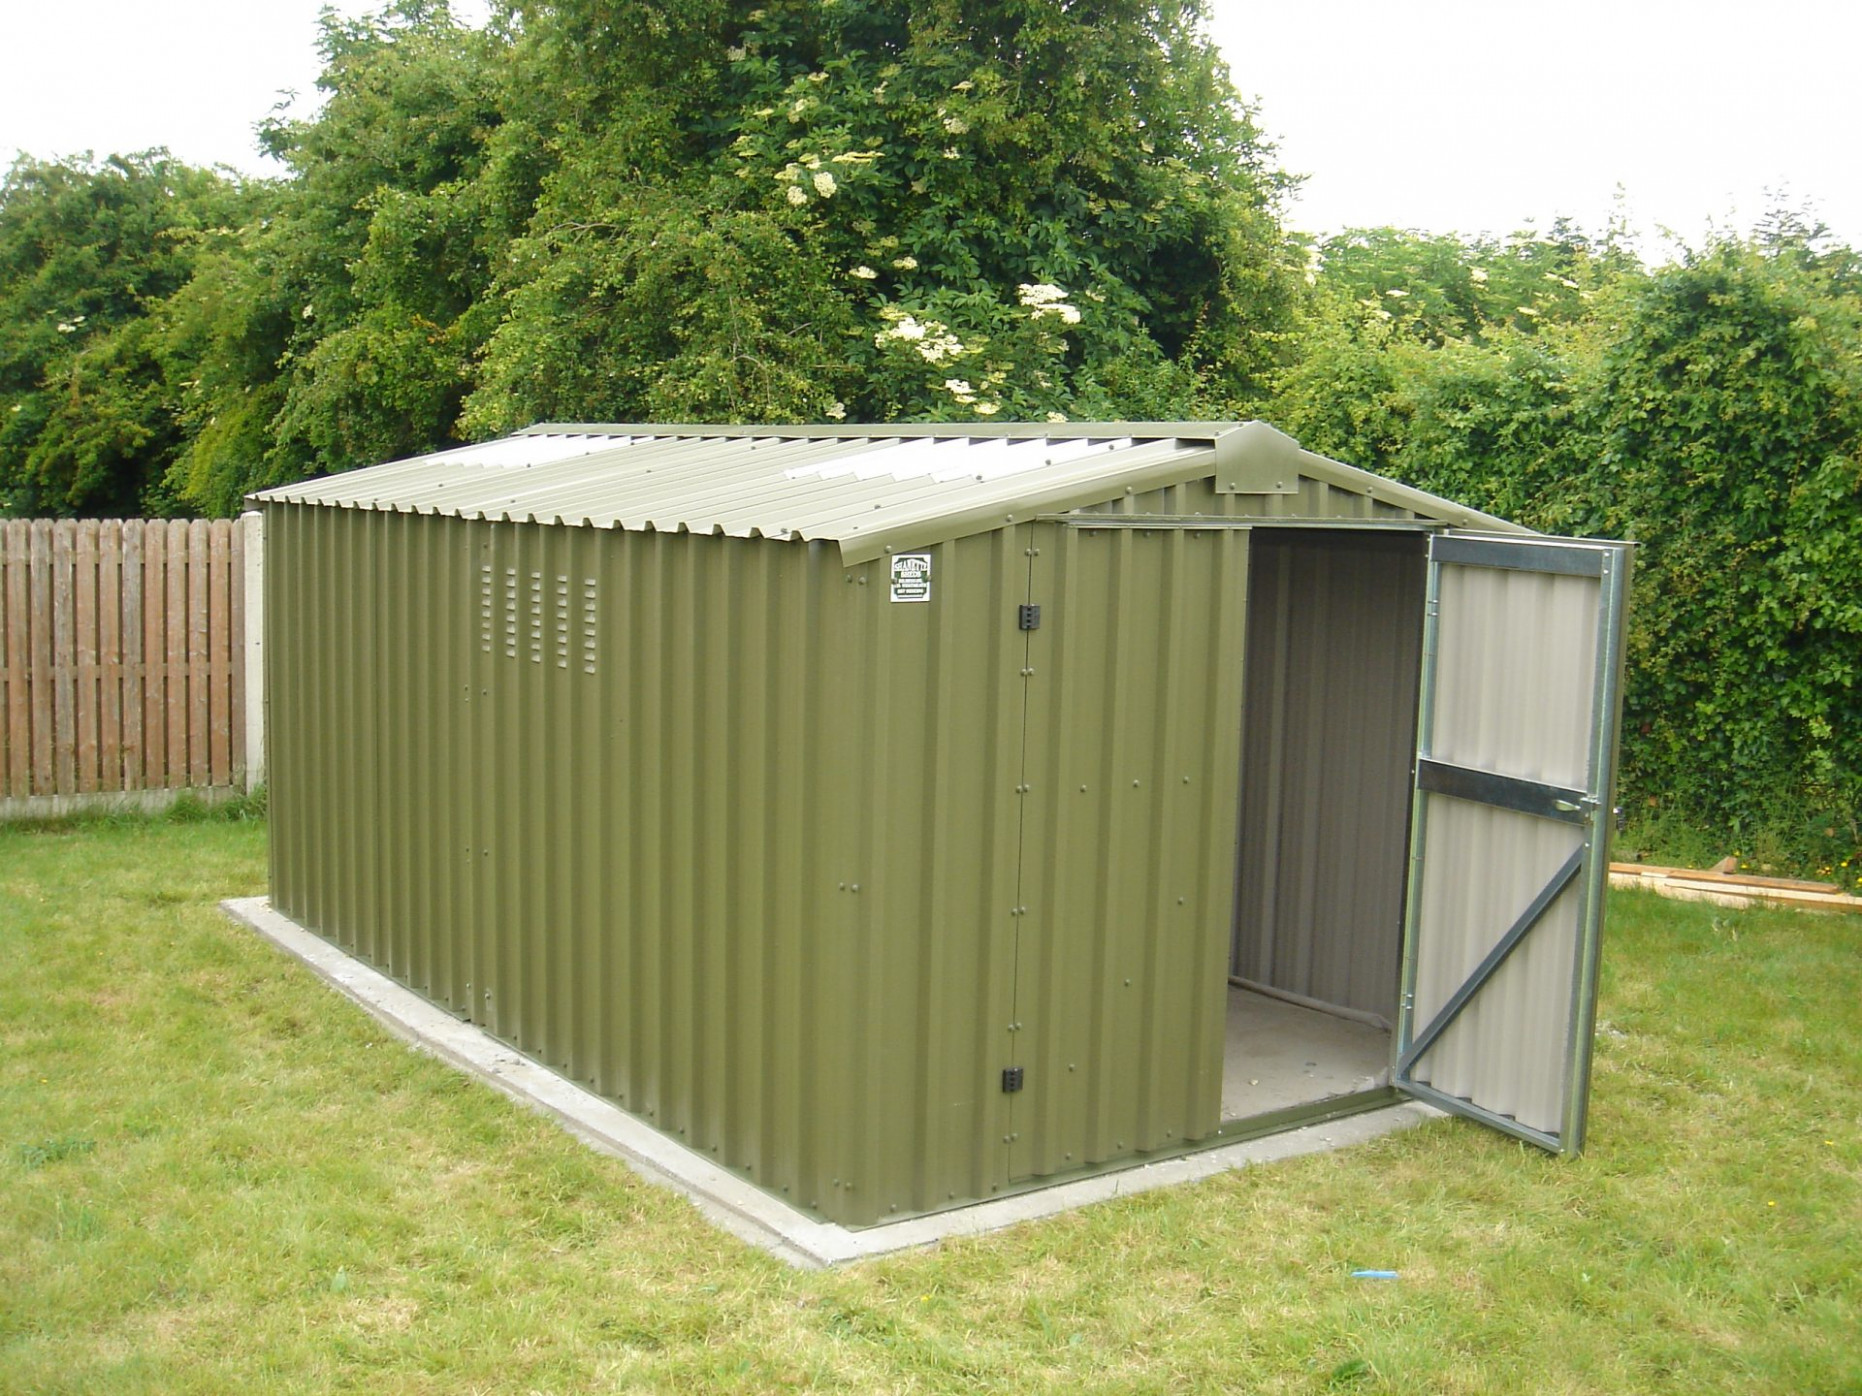 Shanette Sheds, Garages, Commercial & Industrial Storage Wooden Carports Northern Ireland